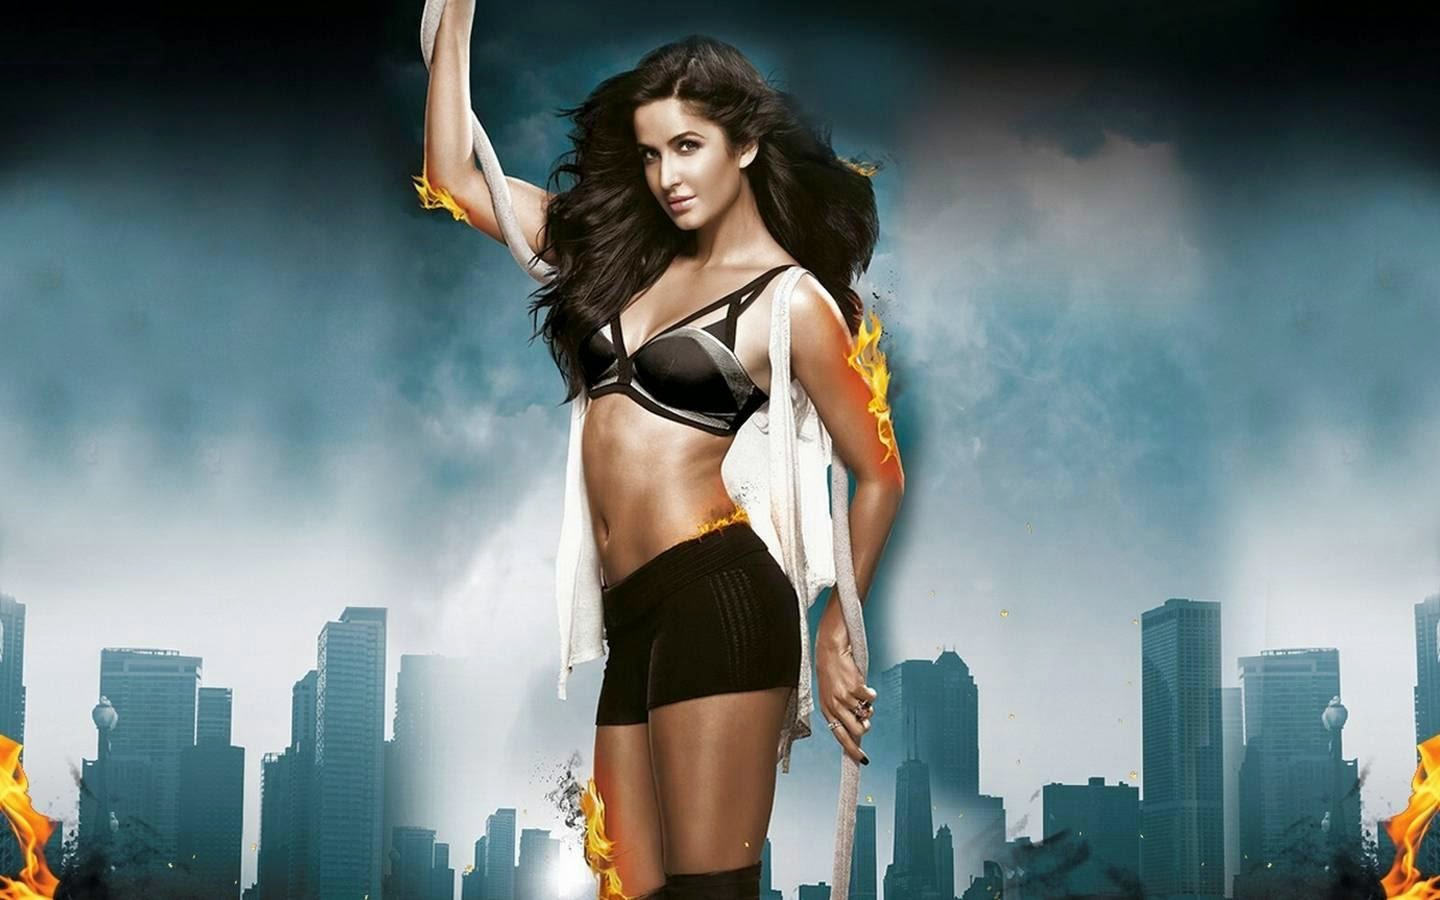 Dhoom 3 Katrina Kaif HD Wallpapers Cool Desktop Background Images Widescreen